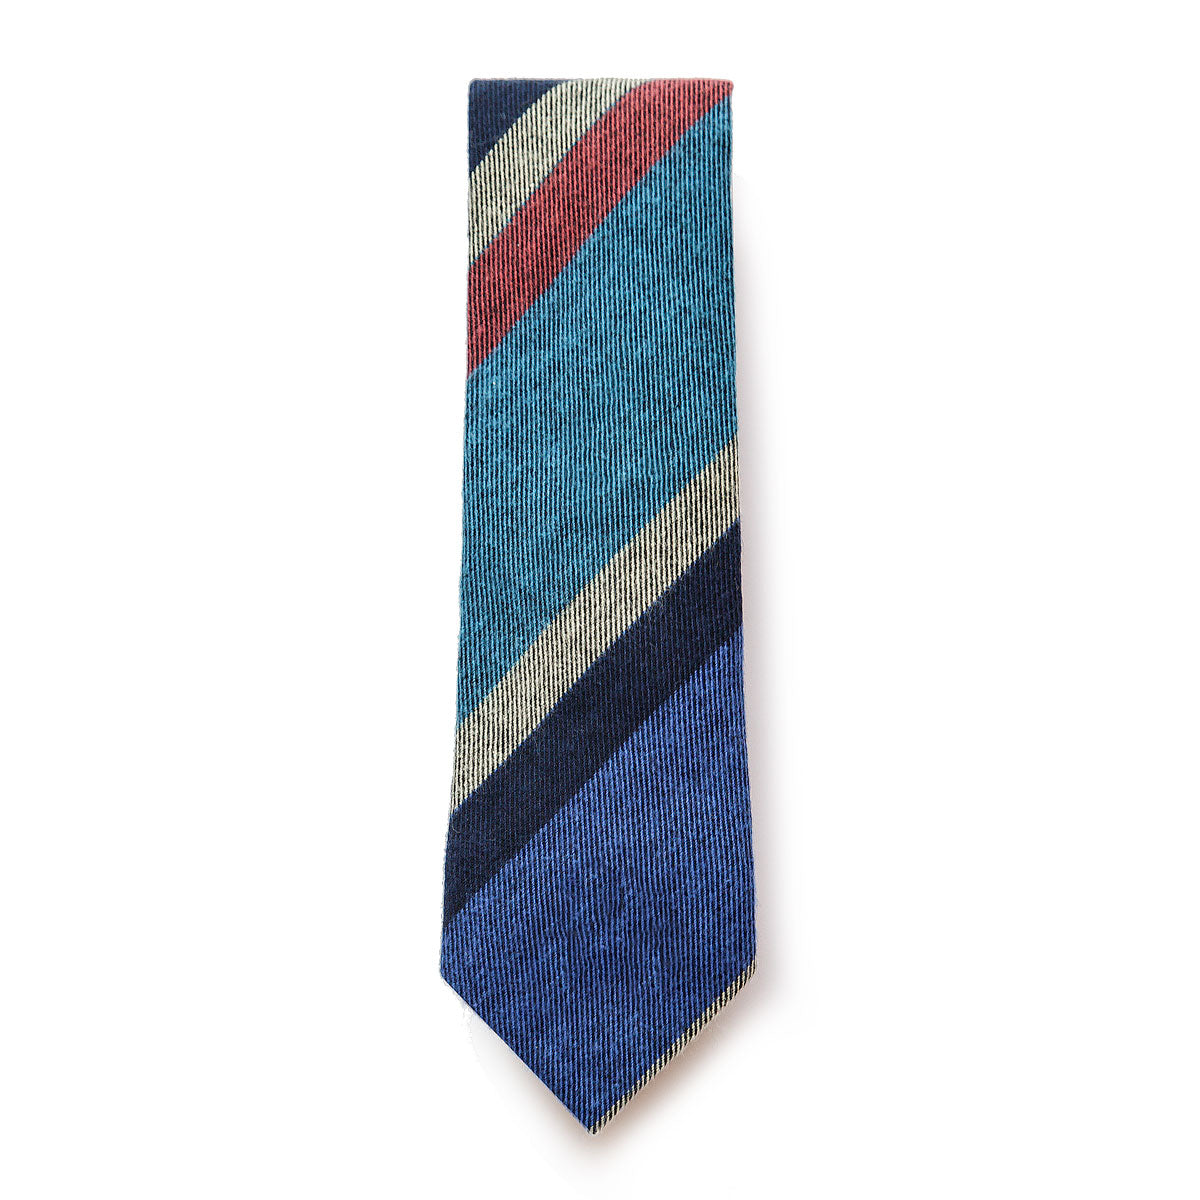 The Dillon Necktie